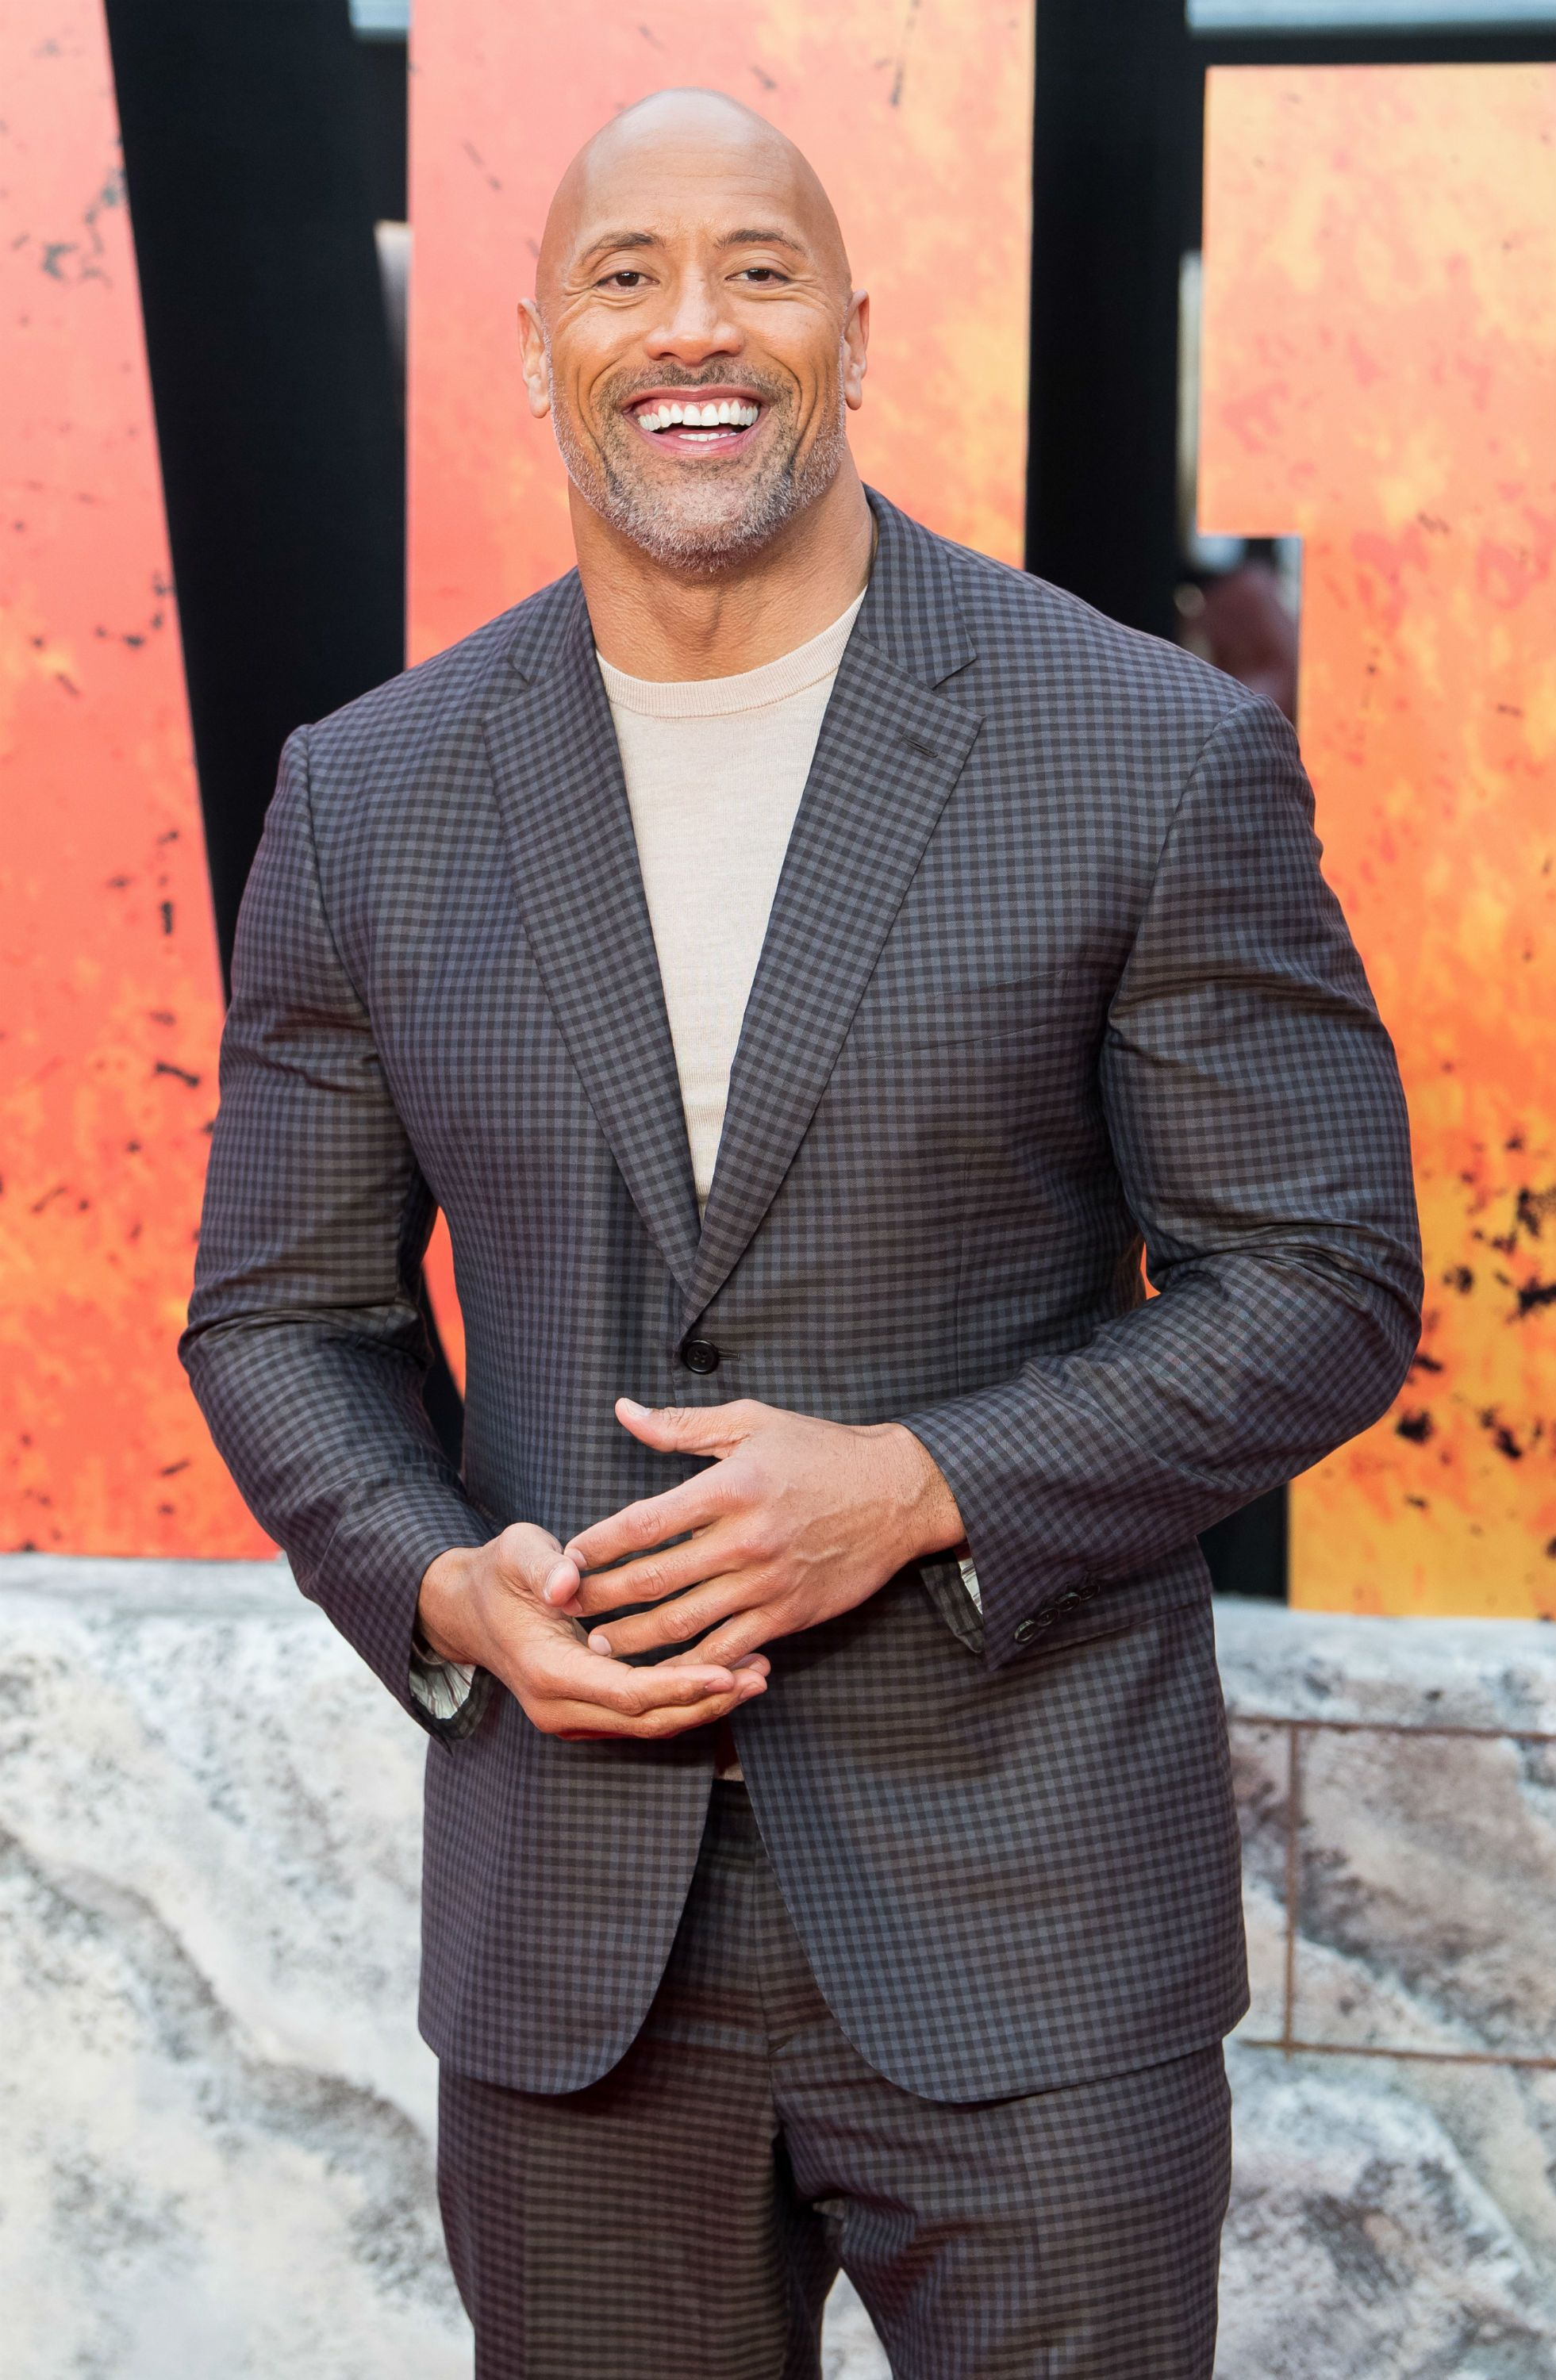 Dwayne Johnson responds to Deadpool creator about potential role